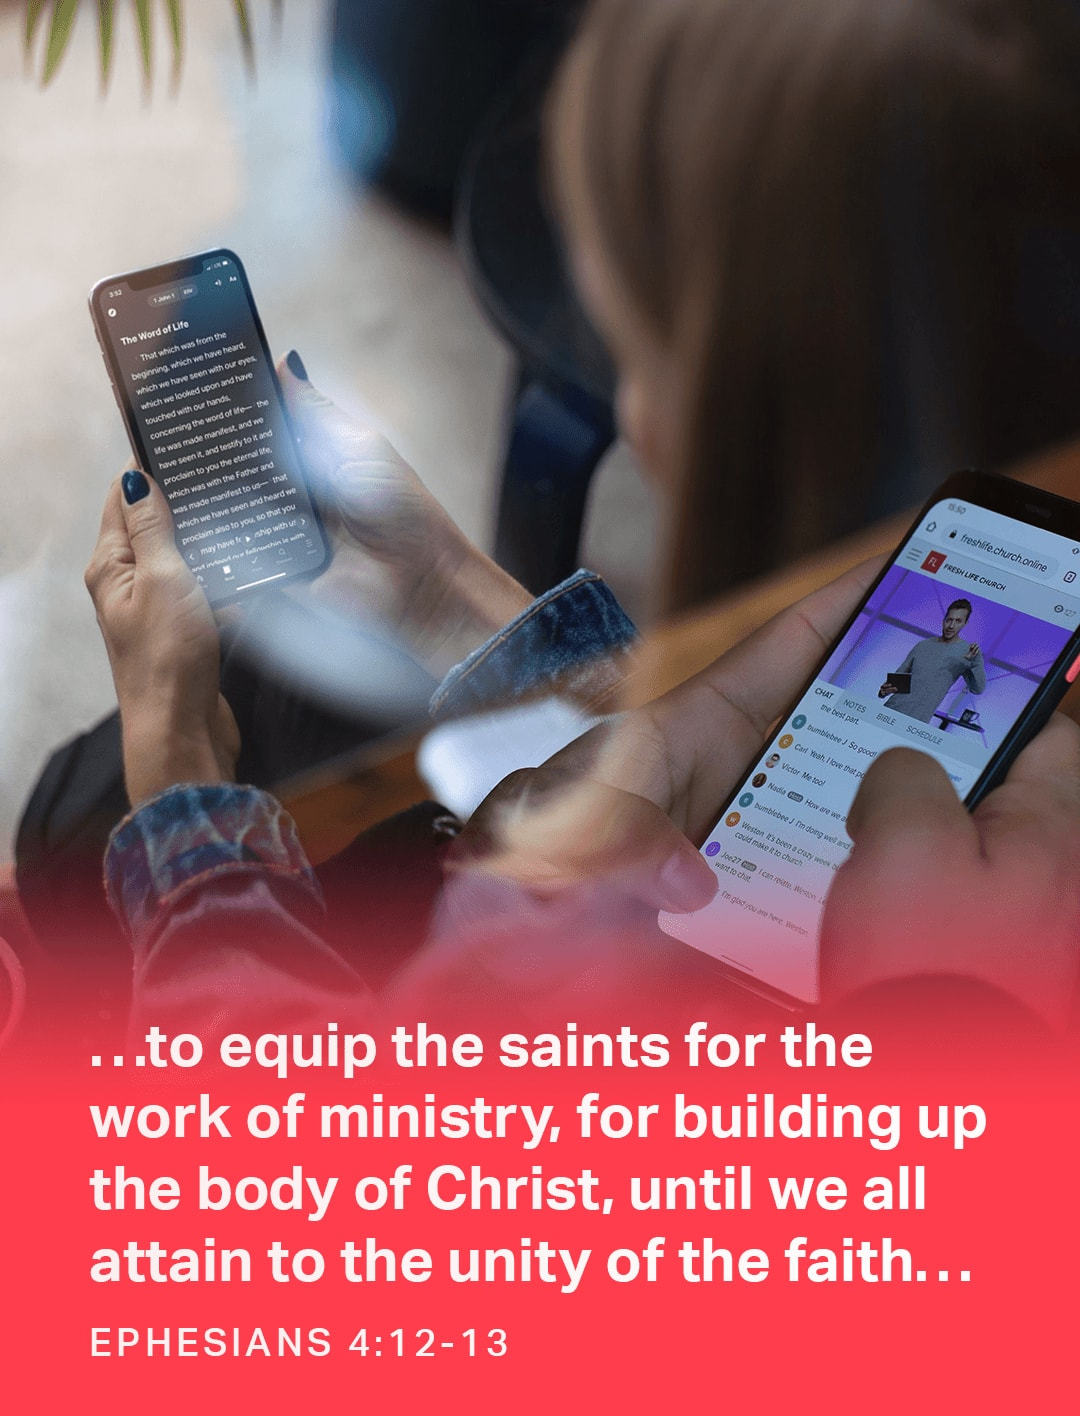 …to equip the saints for the work of ministry, for building up the body of Christ, until we all attain to the unity of the faith… - Ephesians 4:12-13